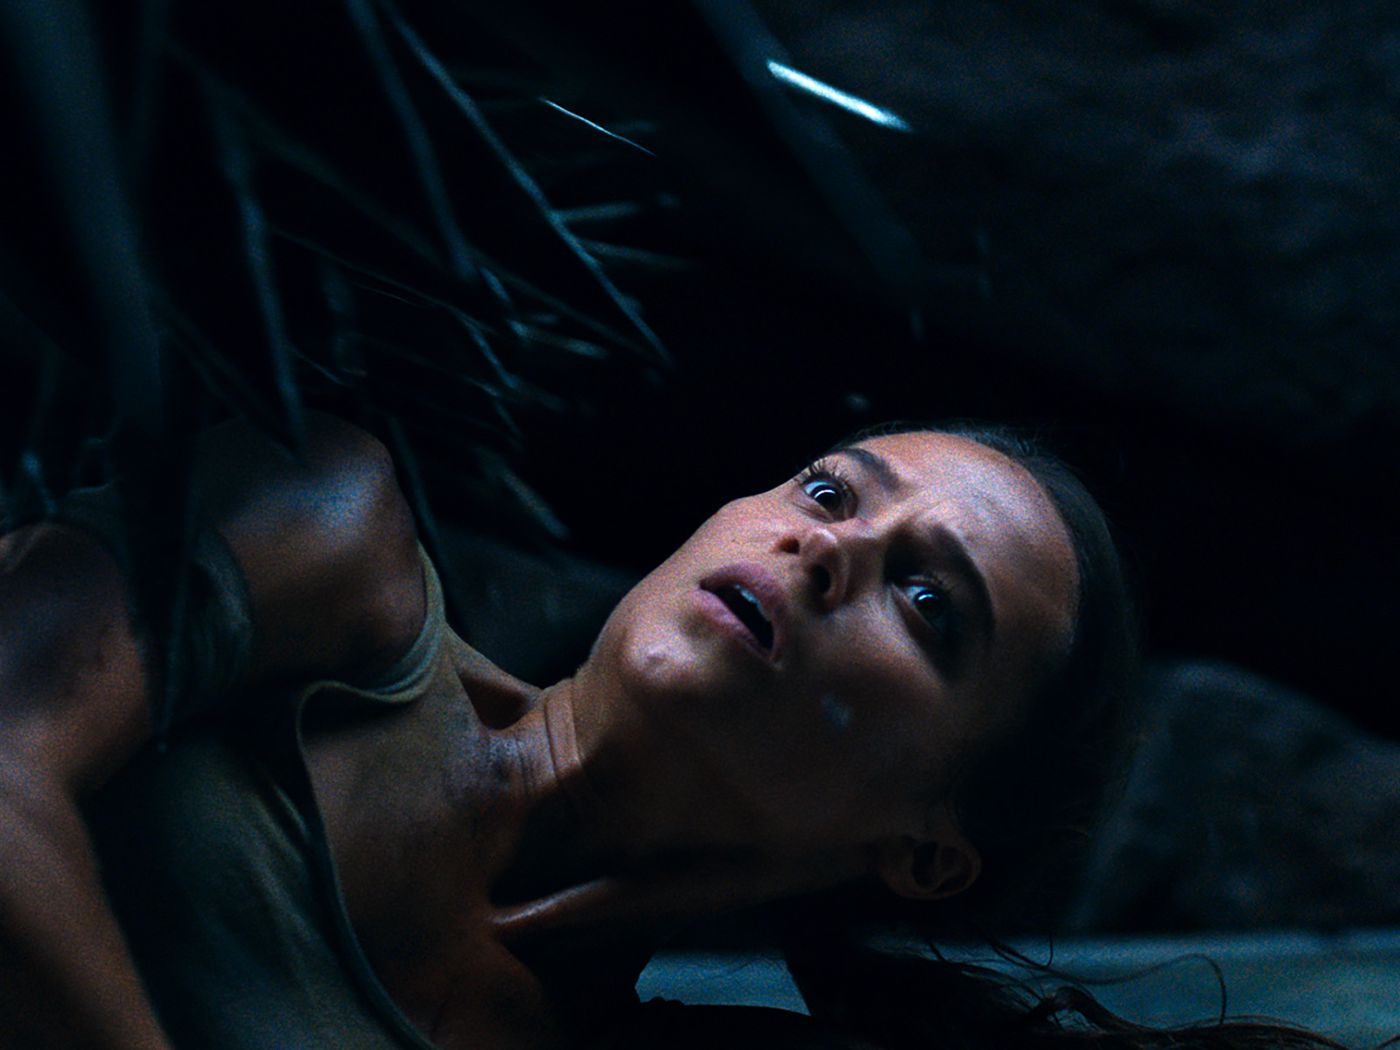 The 2018 Tomb Raider Film Could Have Learned So Much More From The